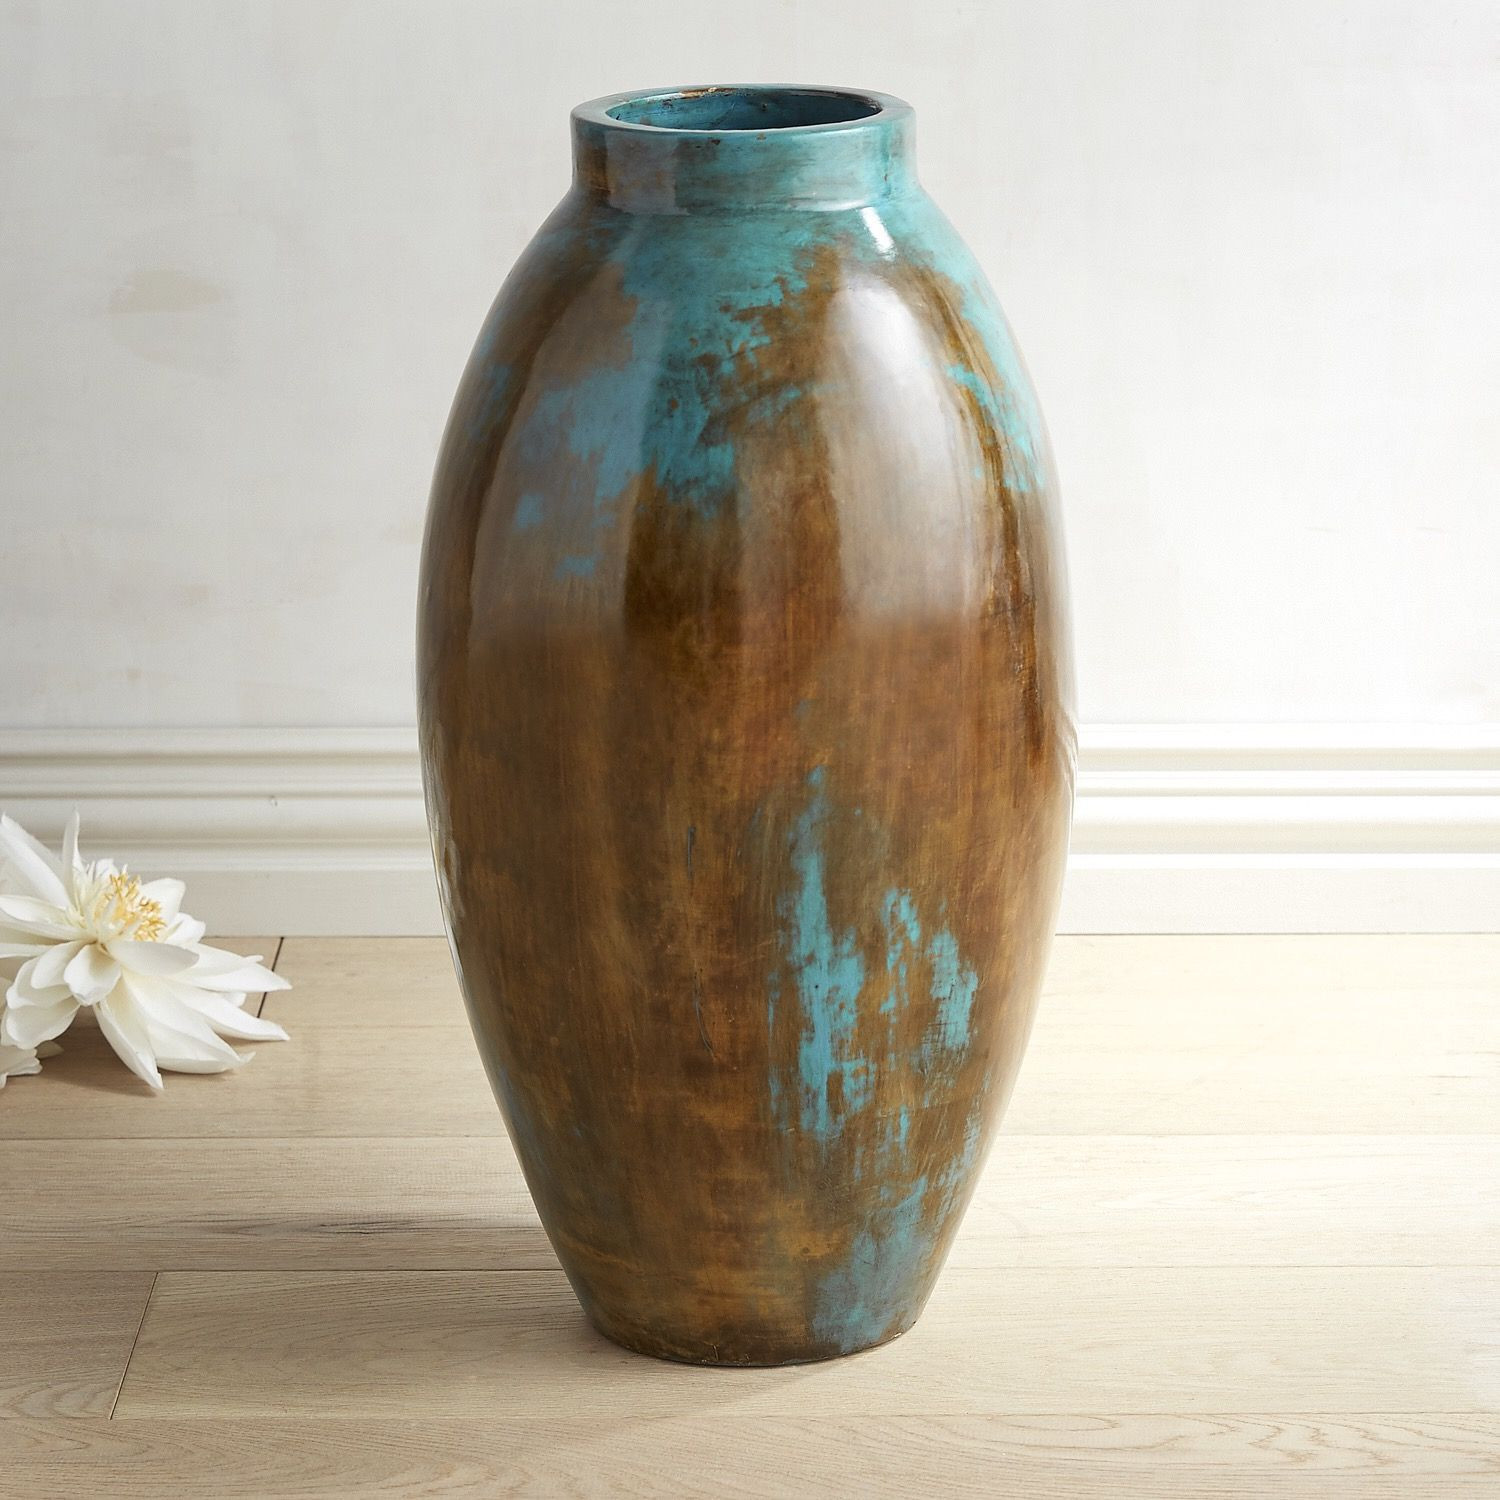 oversized glass floor vase of blue brown oval floor vase products pinterest vase vases with blue brown oval floor vase